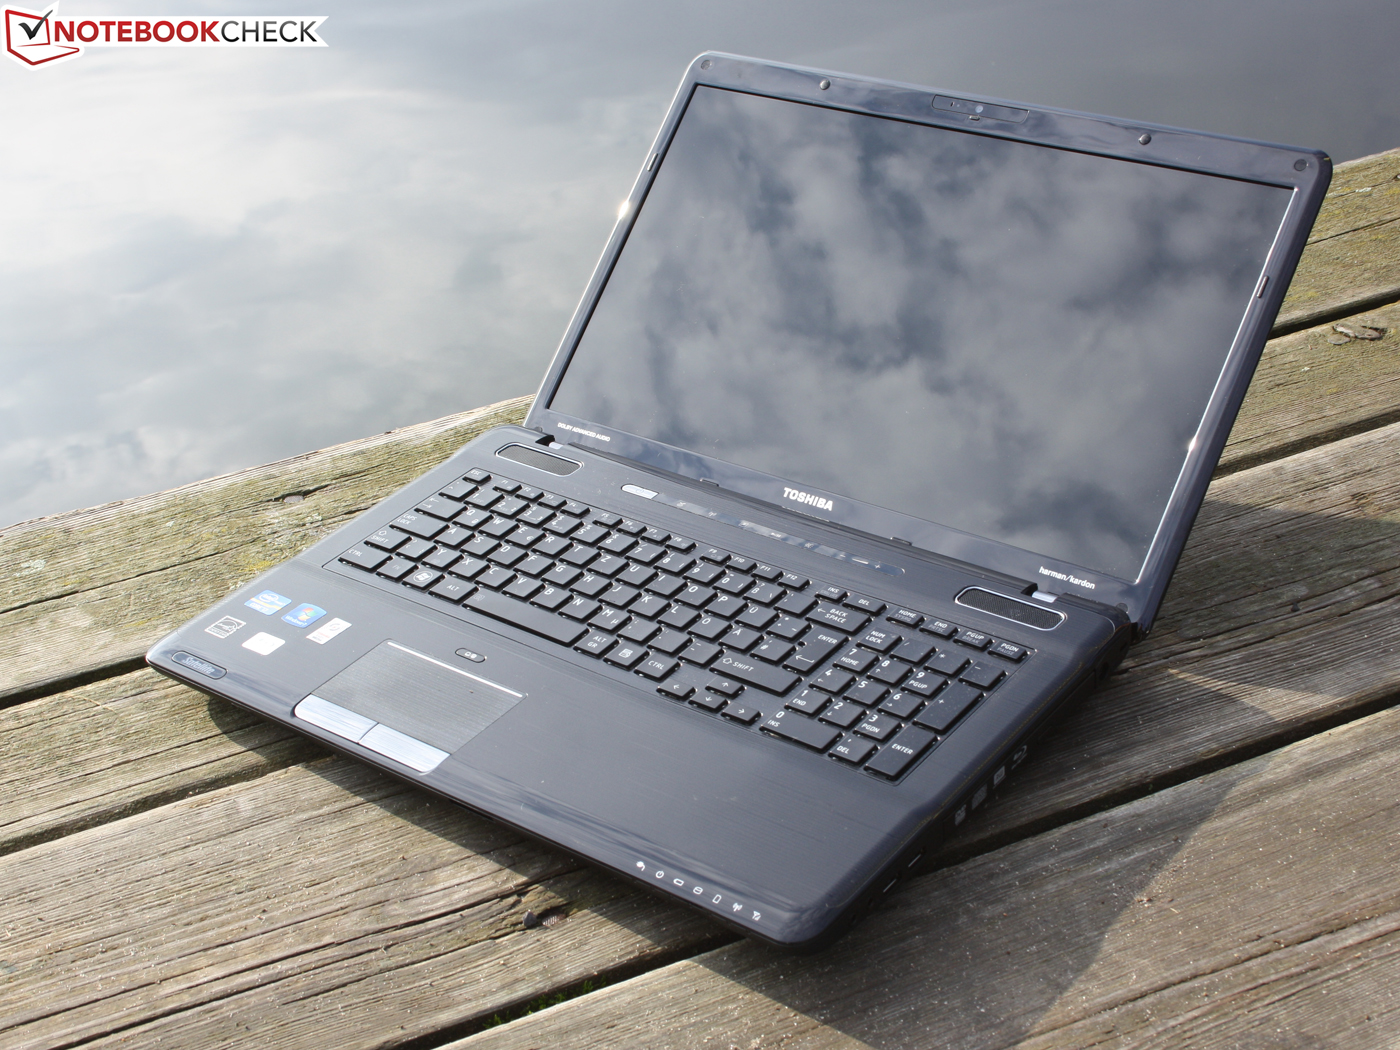 Review Toshiba Satellite P770 10p Notebook Notebookcheck